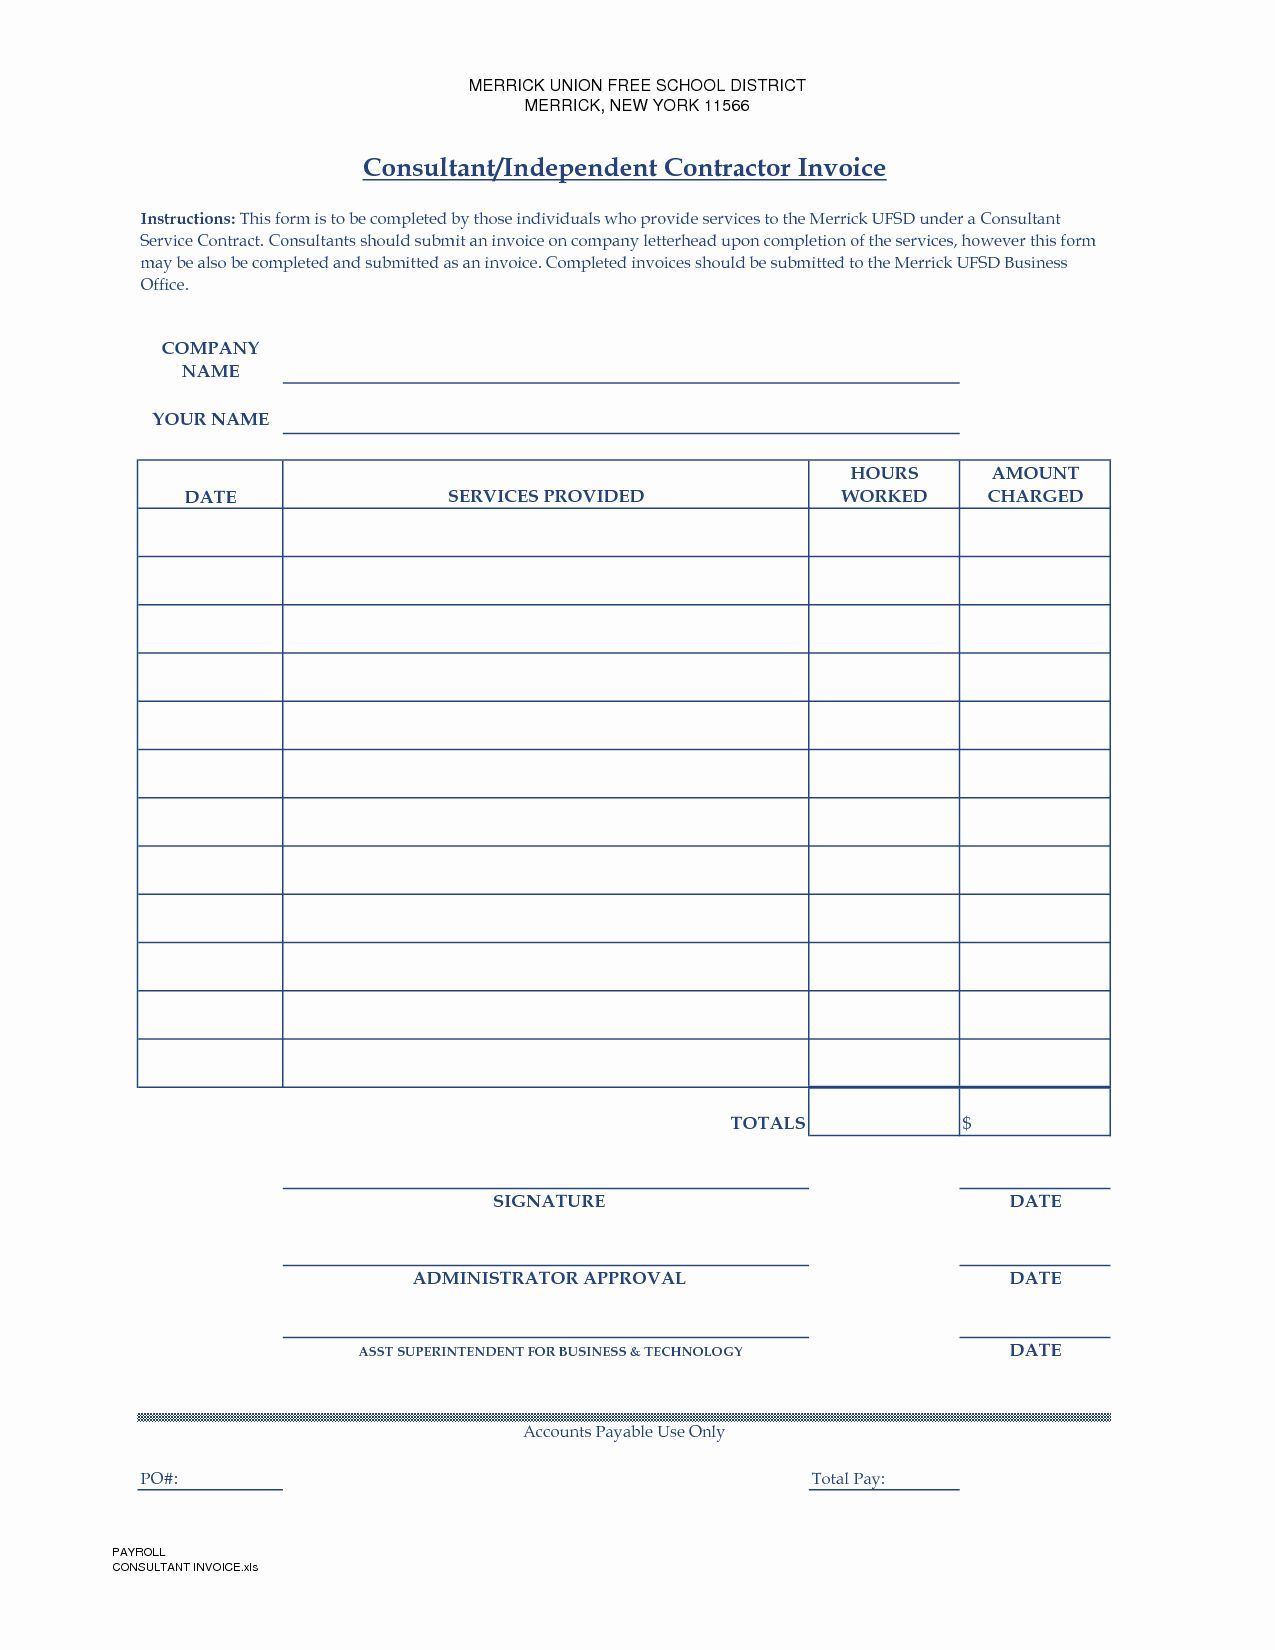 Independent Contractor Invoice Template Excel Lovely Independent Contractor Invoice Template Invoice Template Word Invoice Template Invoice Example